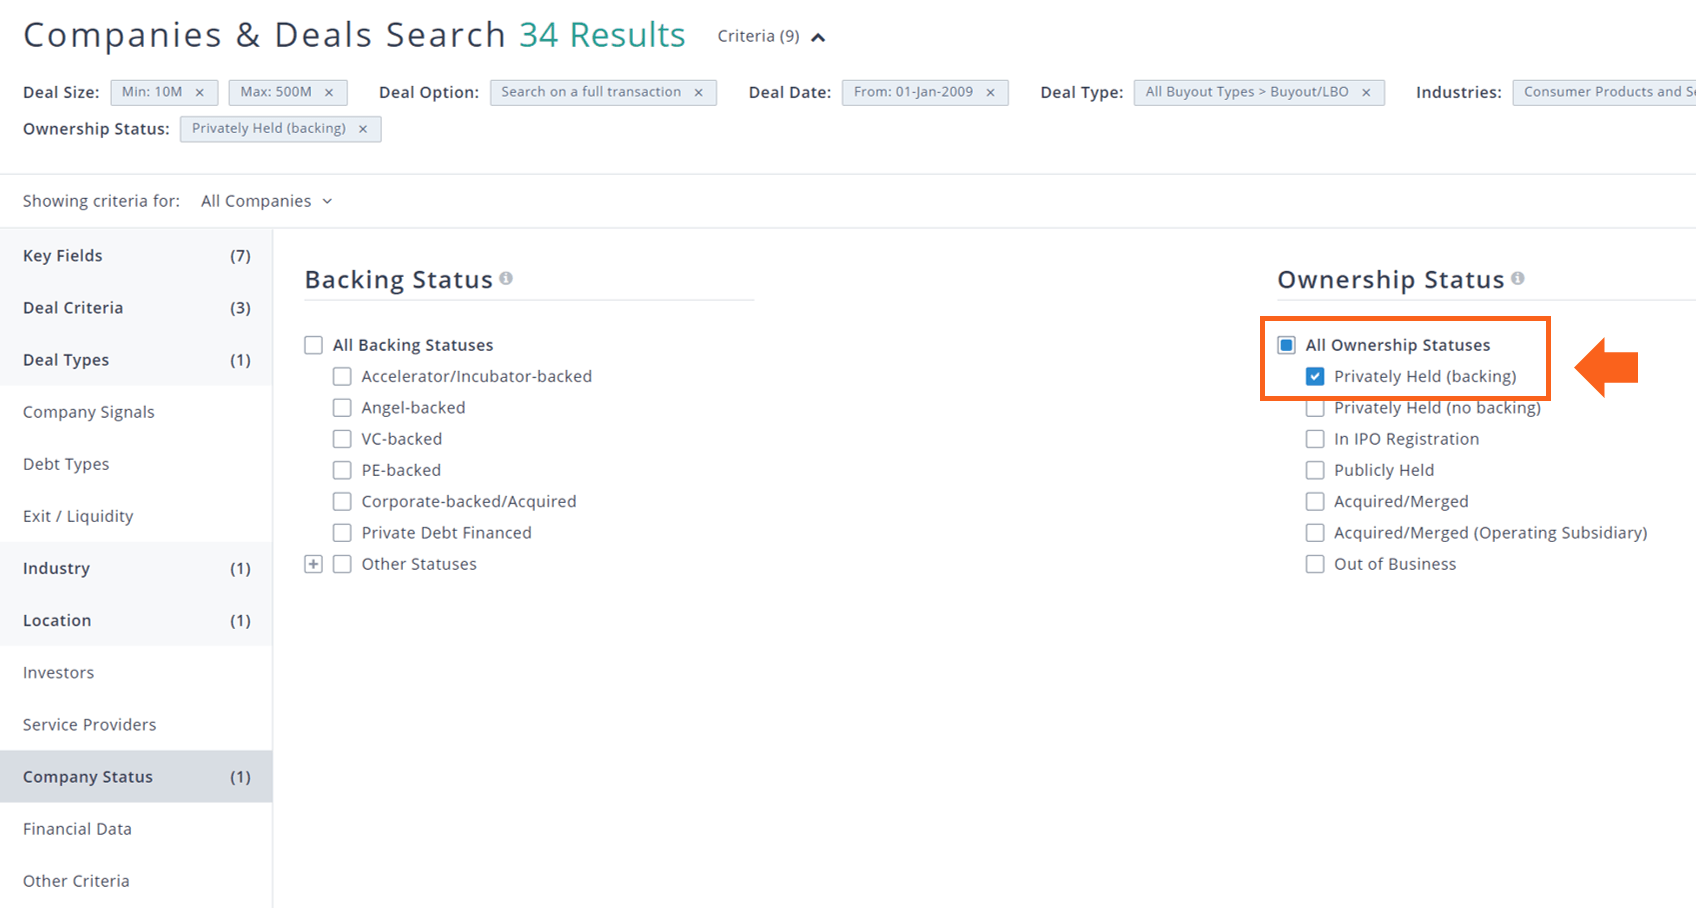 PitchBook companies & deals search company status